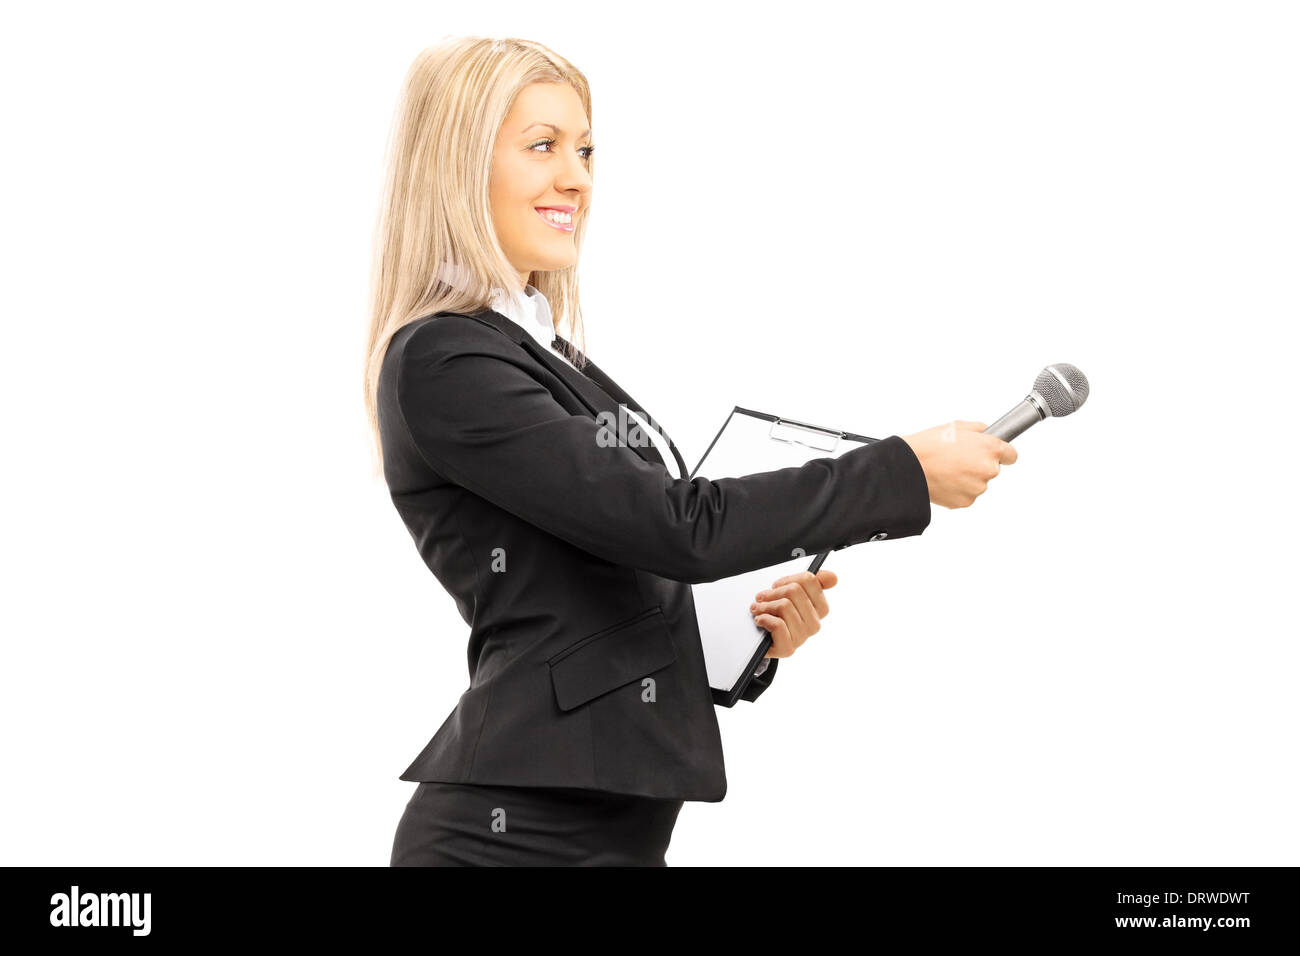 Young female interviewer holding a microphone - Stock Image